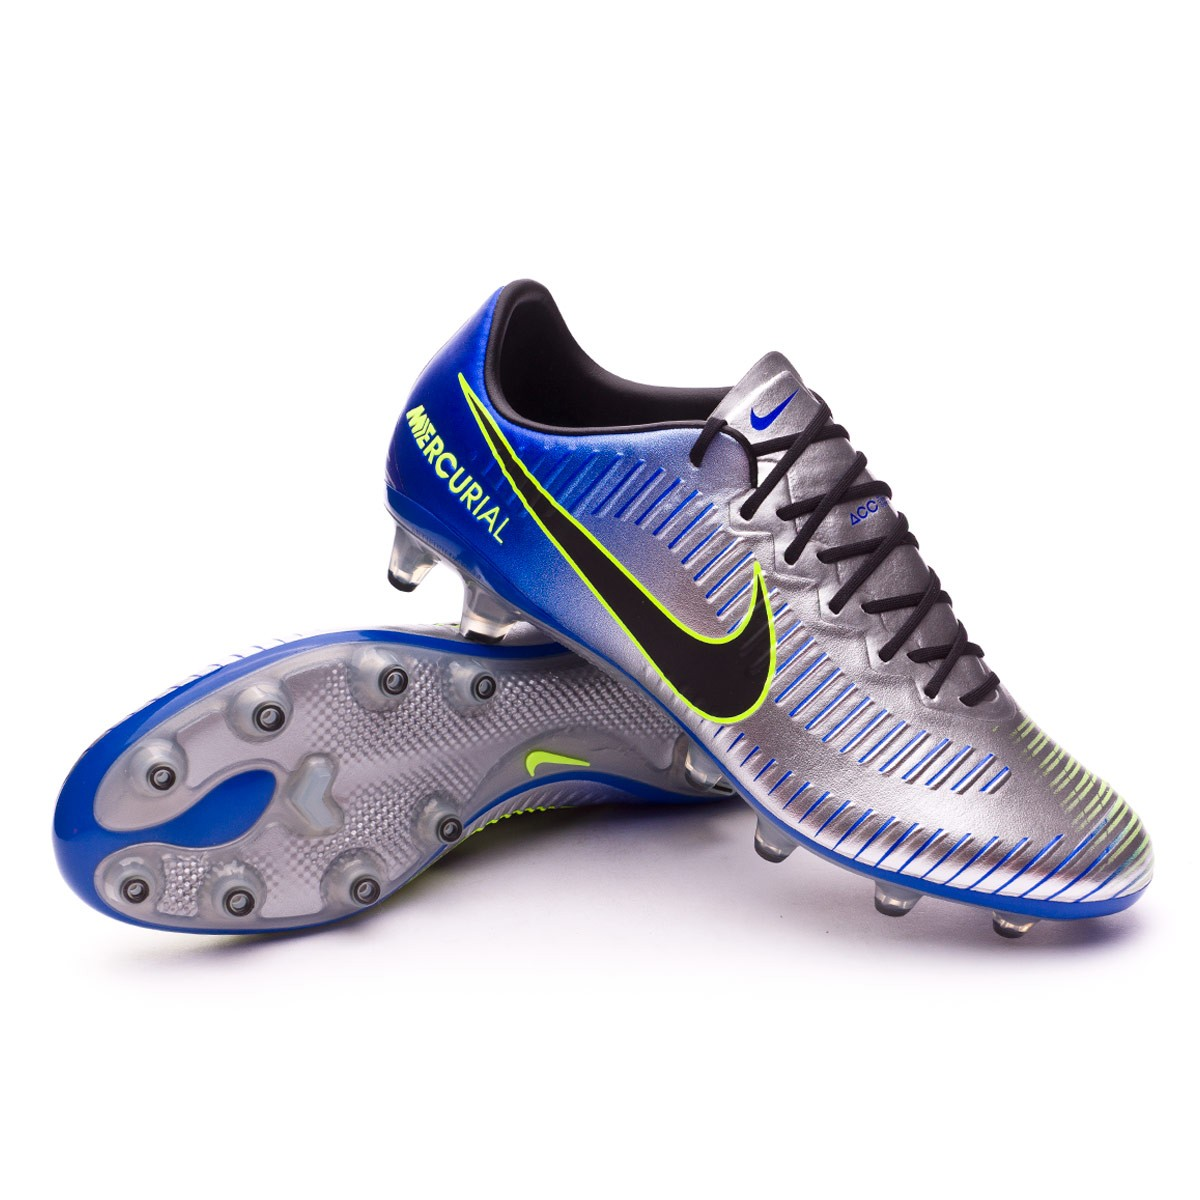 Boot Nike Mercurial Vapor XI AG-Pro Neymar Racer blue-Black-Chrome-